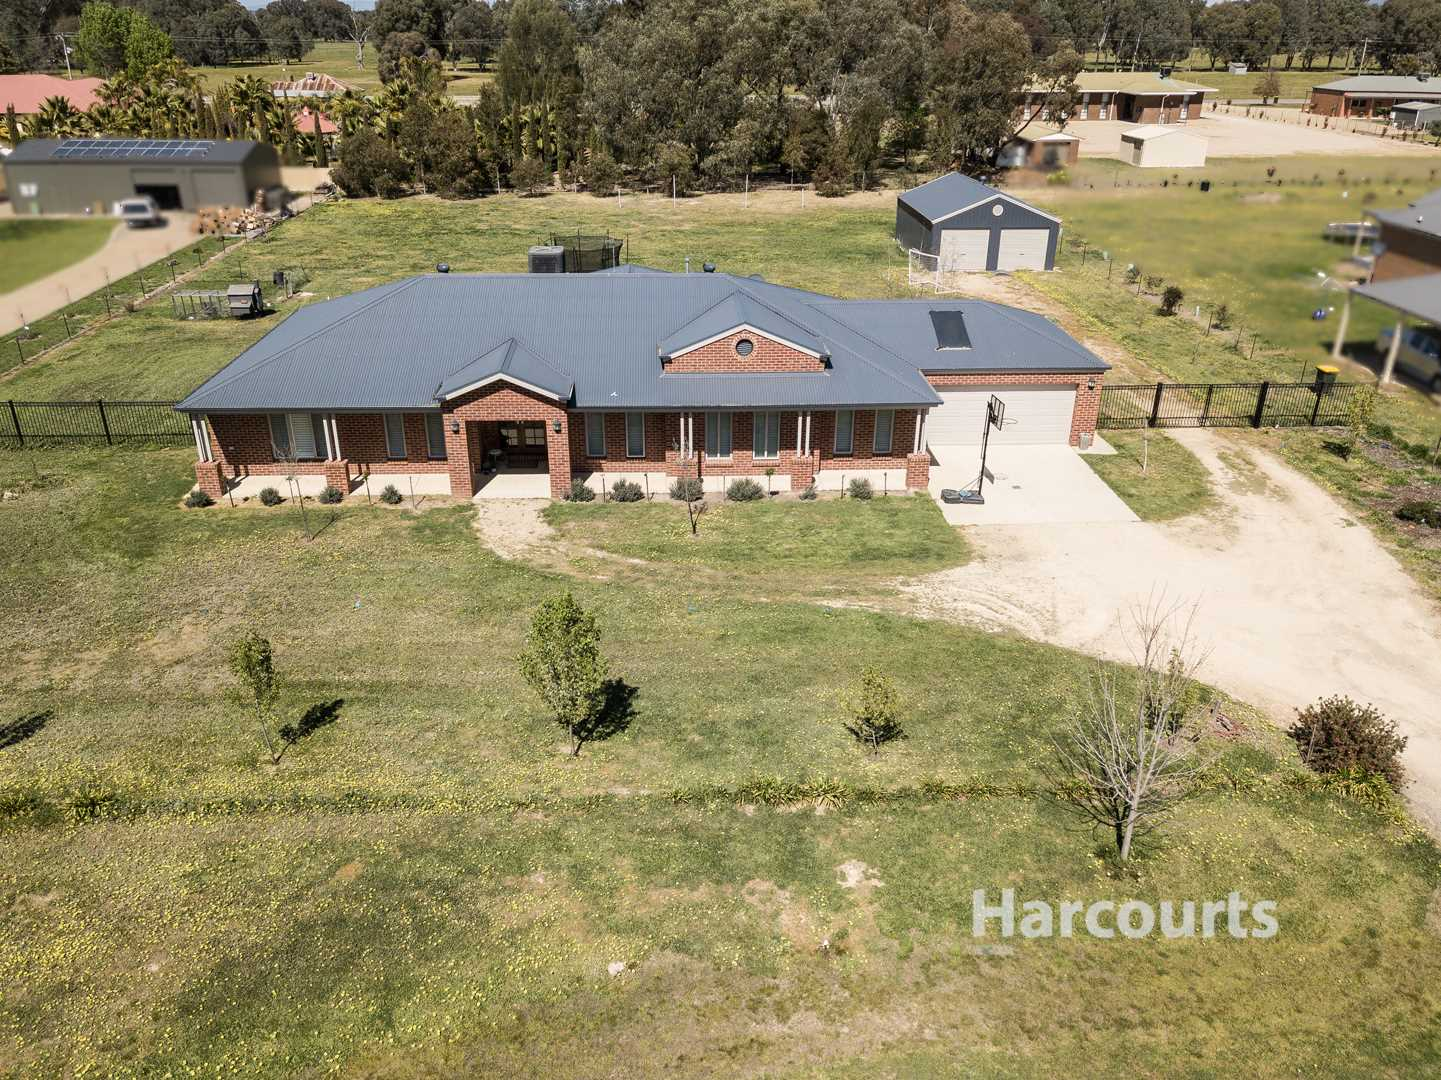 Superb Family Living With Space and Shedding - 3998m2